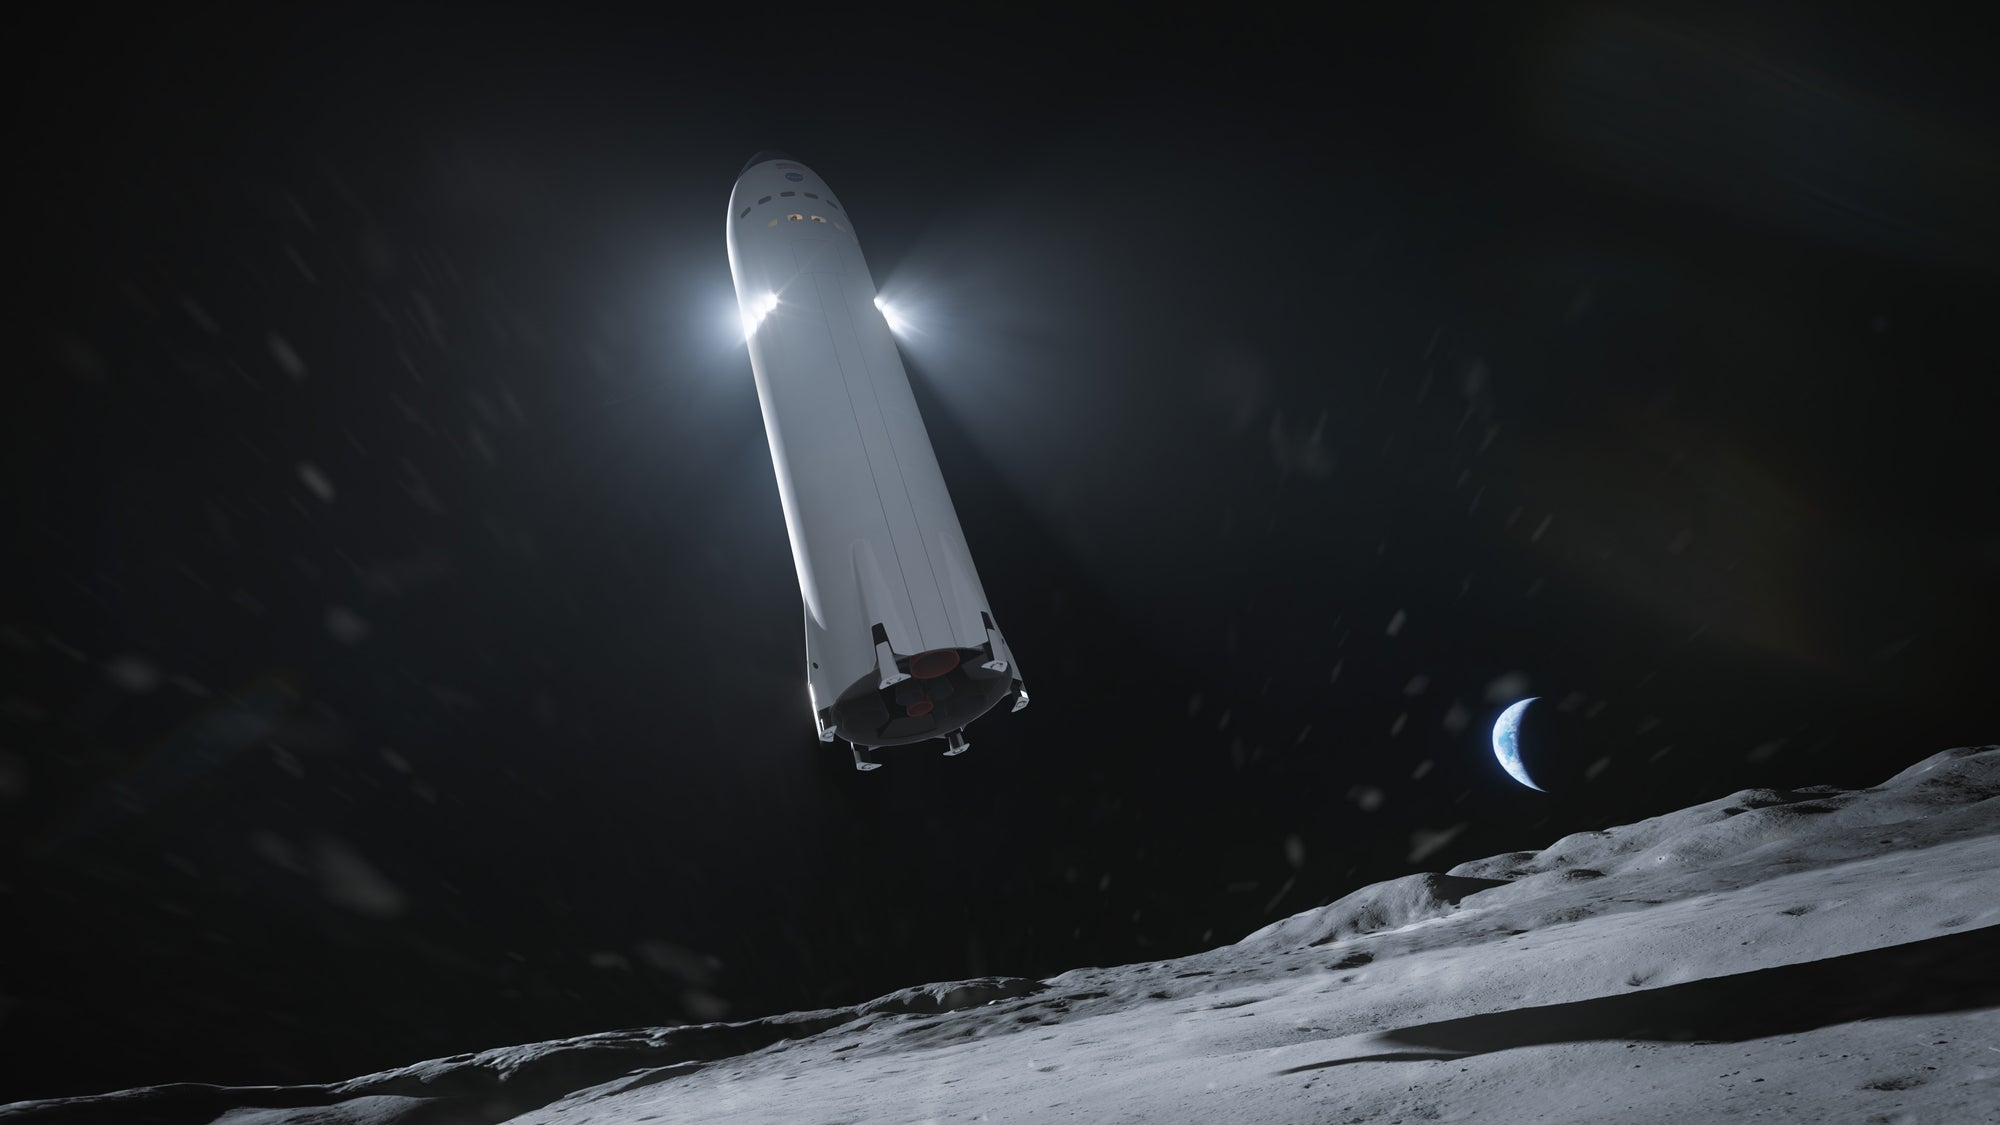 A Space Race begins as SpaceX competes to develop a Starship Lunar Lander for NASA